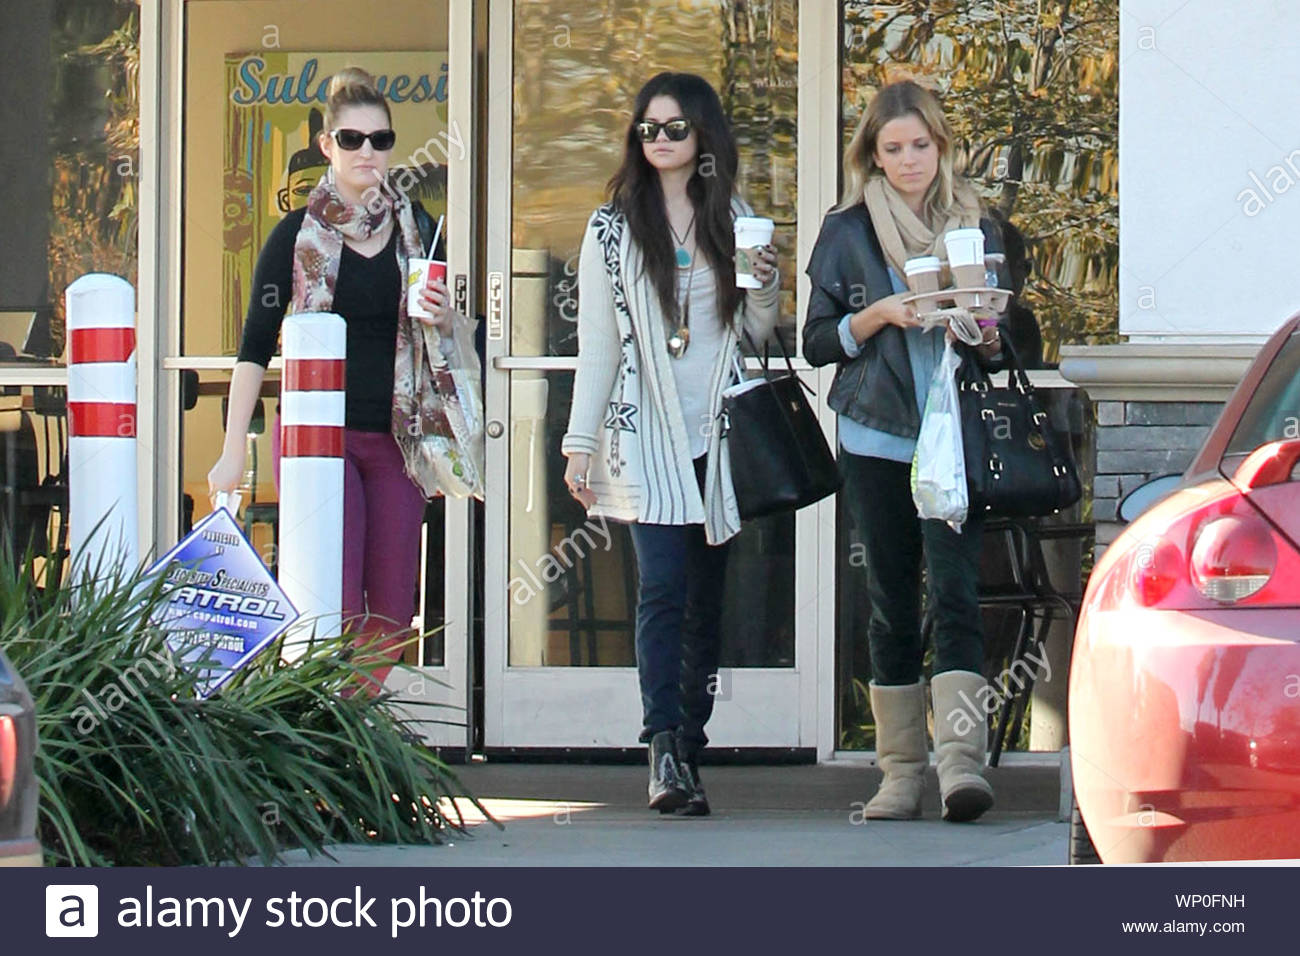 burbank ca after selena gomez grabbed some lunch from mcdonalds earlier today she made her way https www alamy com burbank ca after selena gomez grabbed some lunch from mcdonalds earlier today she made her way to the studio and during her break got some quality time with her gal pals as they made a coffee run to starbucks and picked up some food from subway the actresssinger recently ended her relationship with justin bieber and it appears that she is doing just fine without him with recent rumors of the young starlet hitting it off with the hunger games star josh hutchinson at the golden globe awards and reports that selena was getting super close and holding hands with her monte carlo image271690317 html